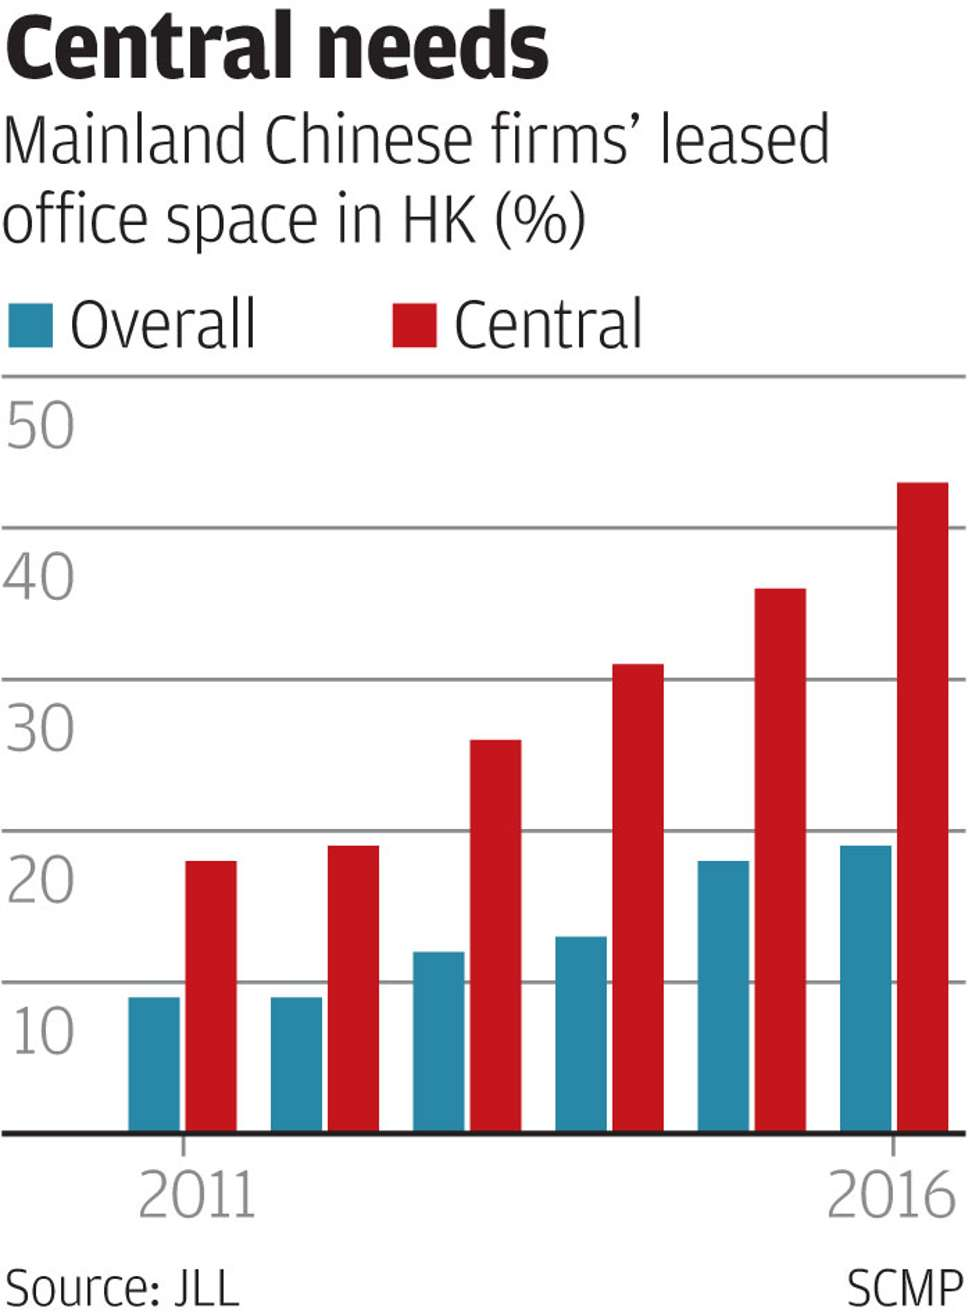 Chinese tenants queue up to take over Central's office space | South